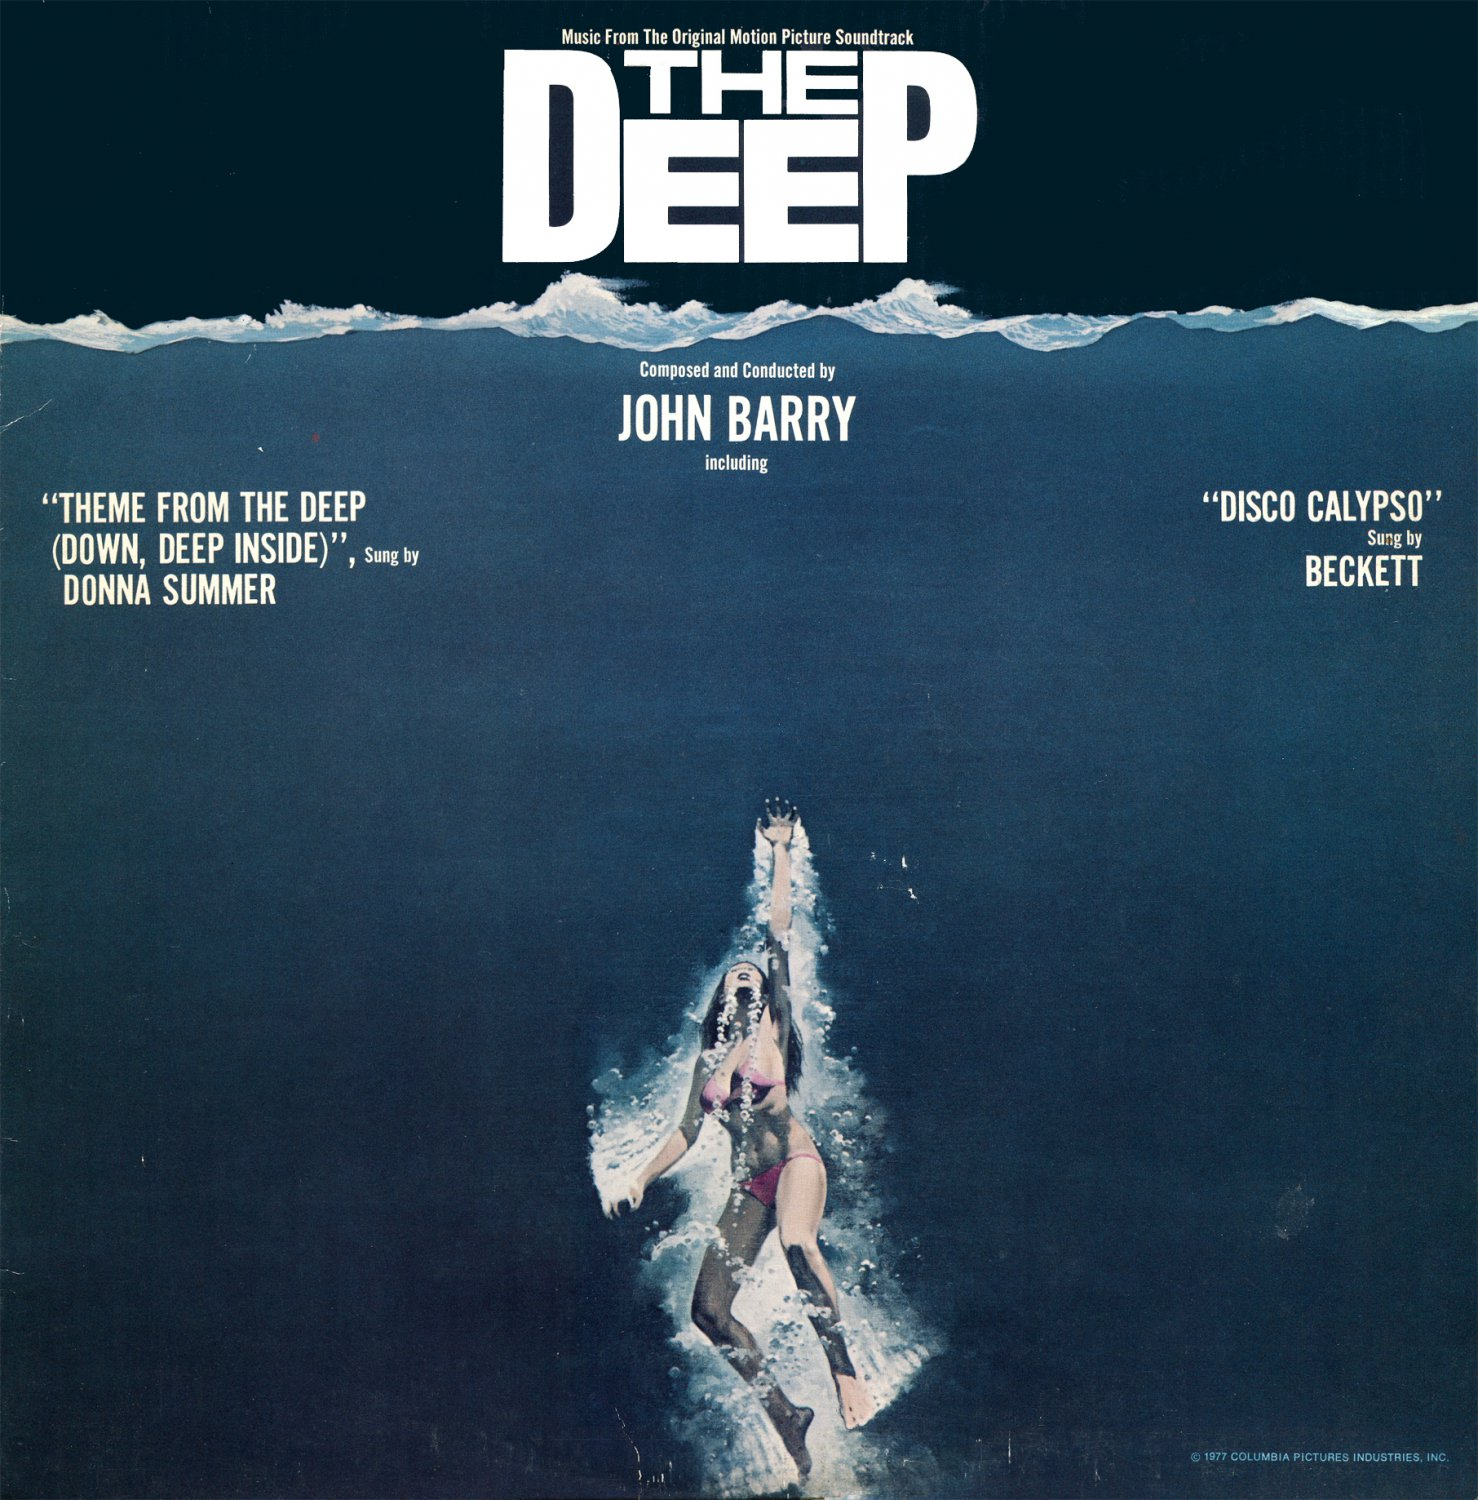 The Deep - Original Soundtrack, John Barry OST LP/CD